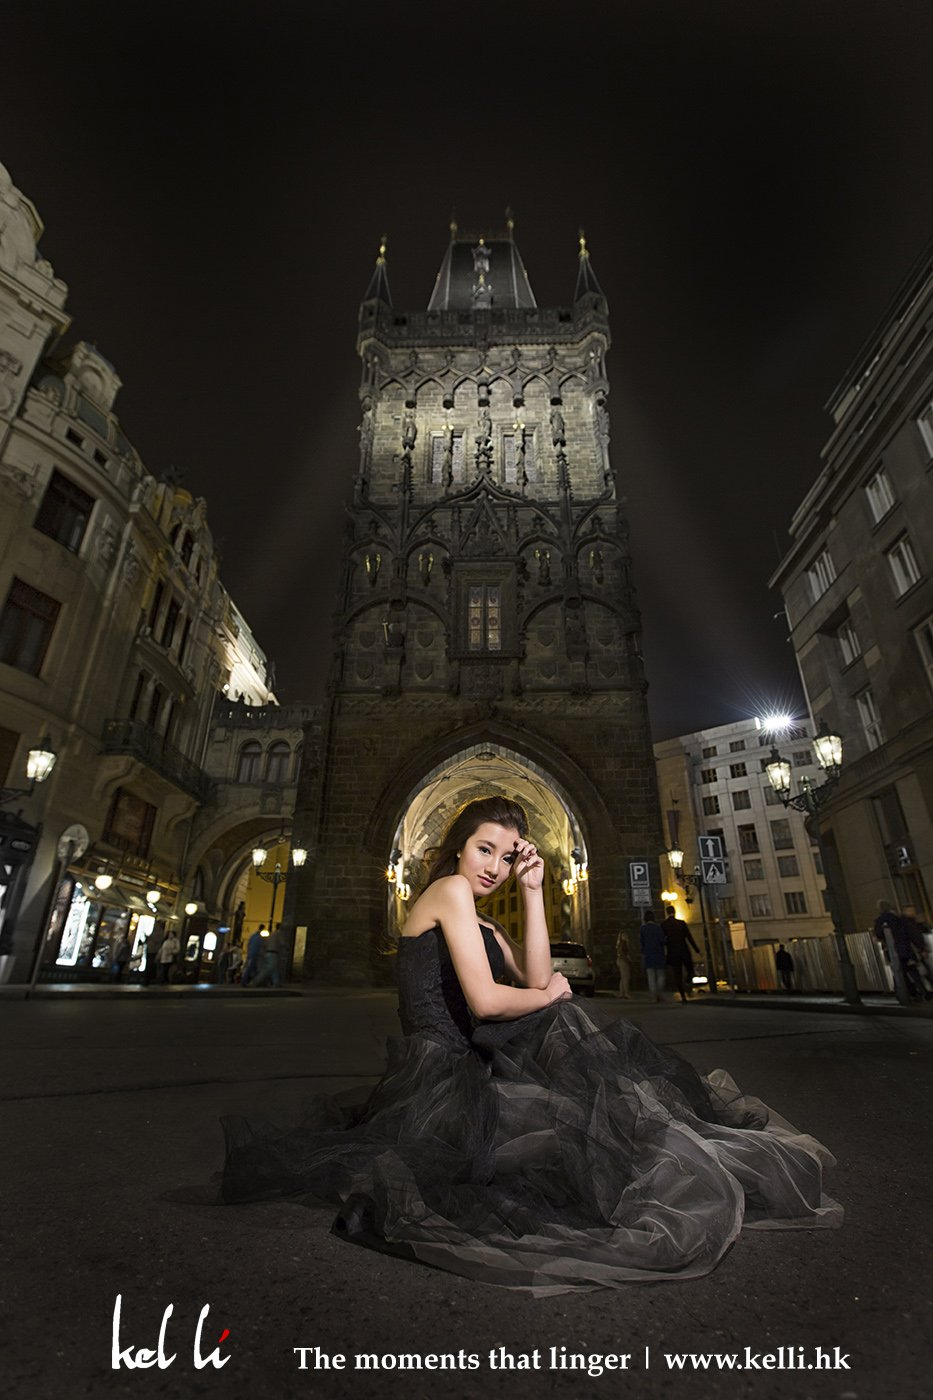 新人在布拉格動人的夜景襯托下,更加動人 | Prewedding phtoos at night in Prague. It's simply beautiful.